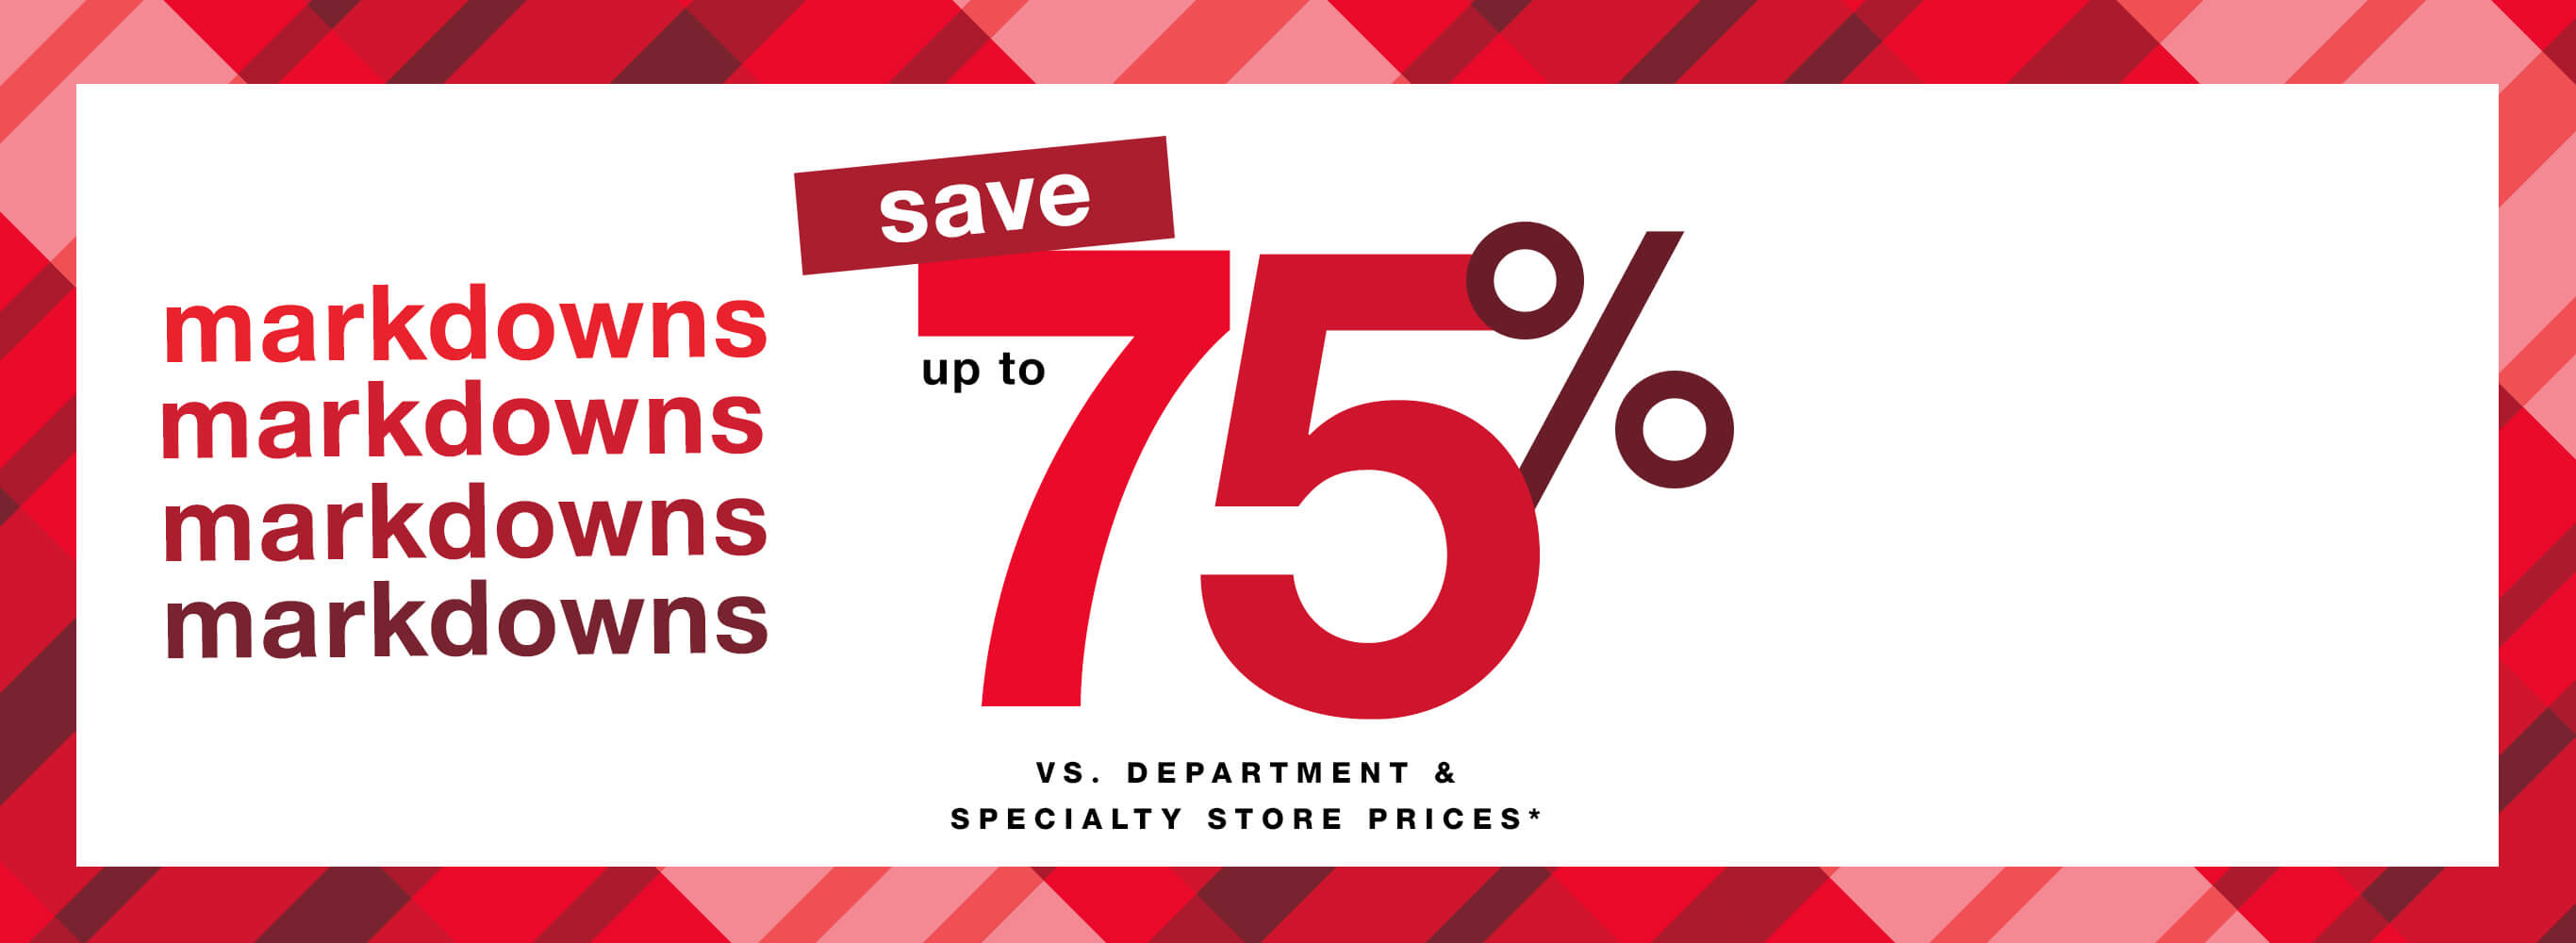 Markdowns: Save Up to 75% vs. Department & Specialty Store Prices*